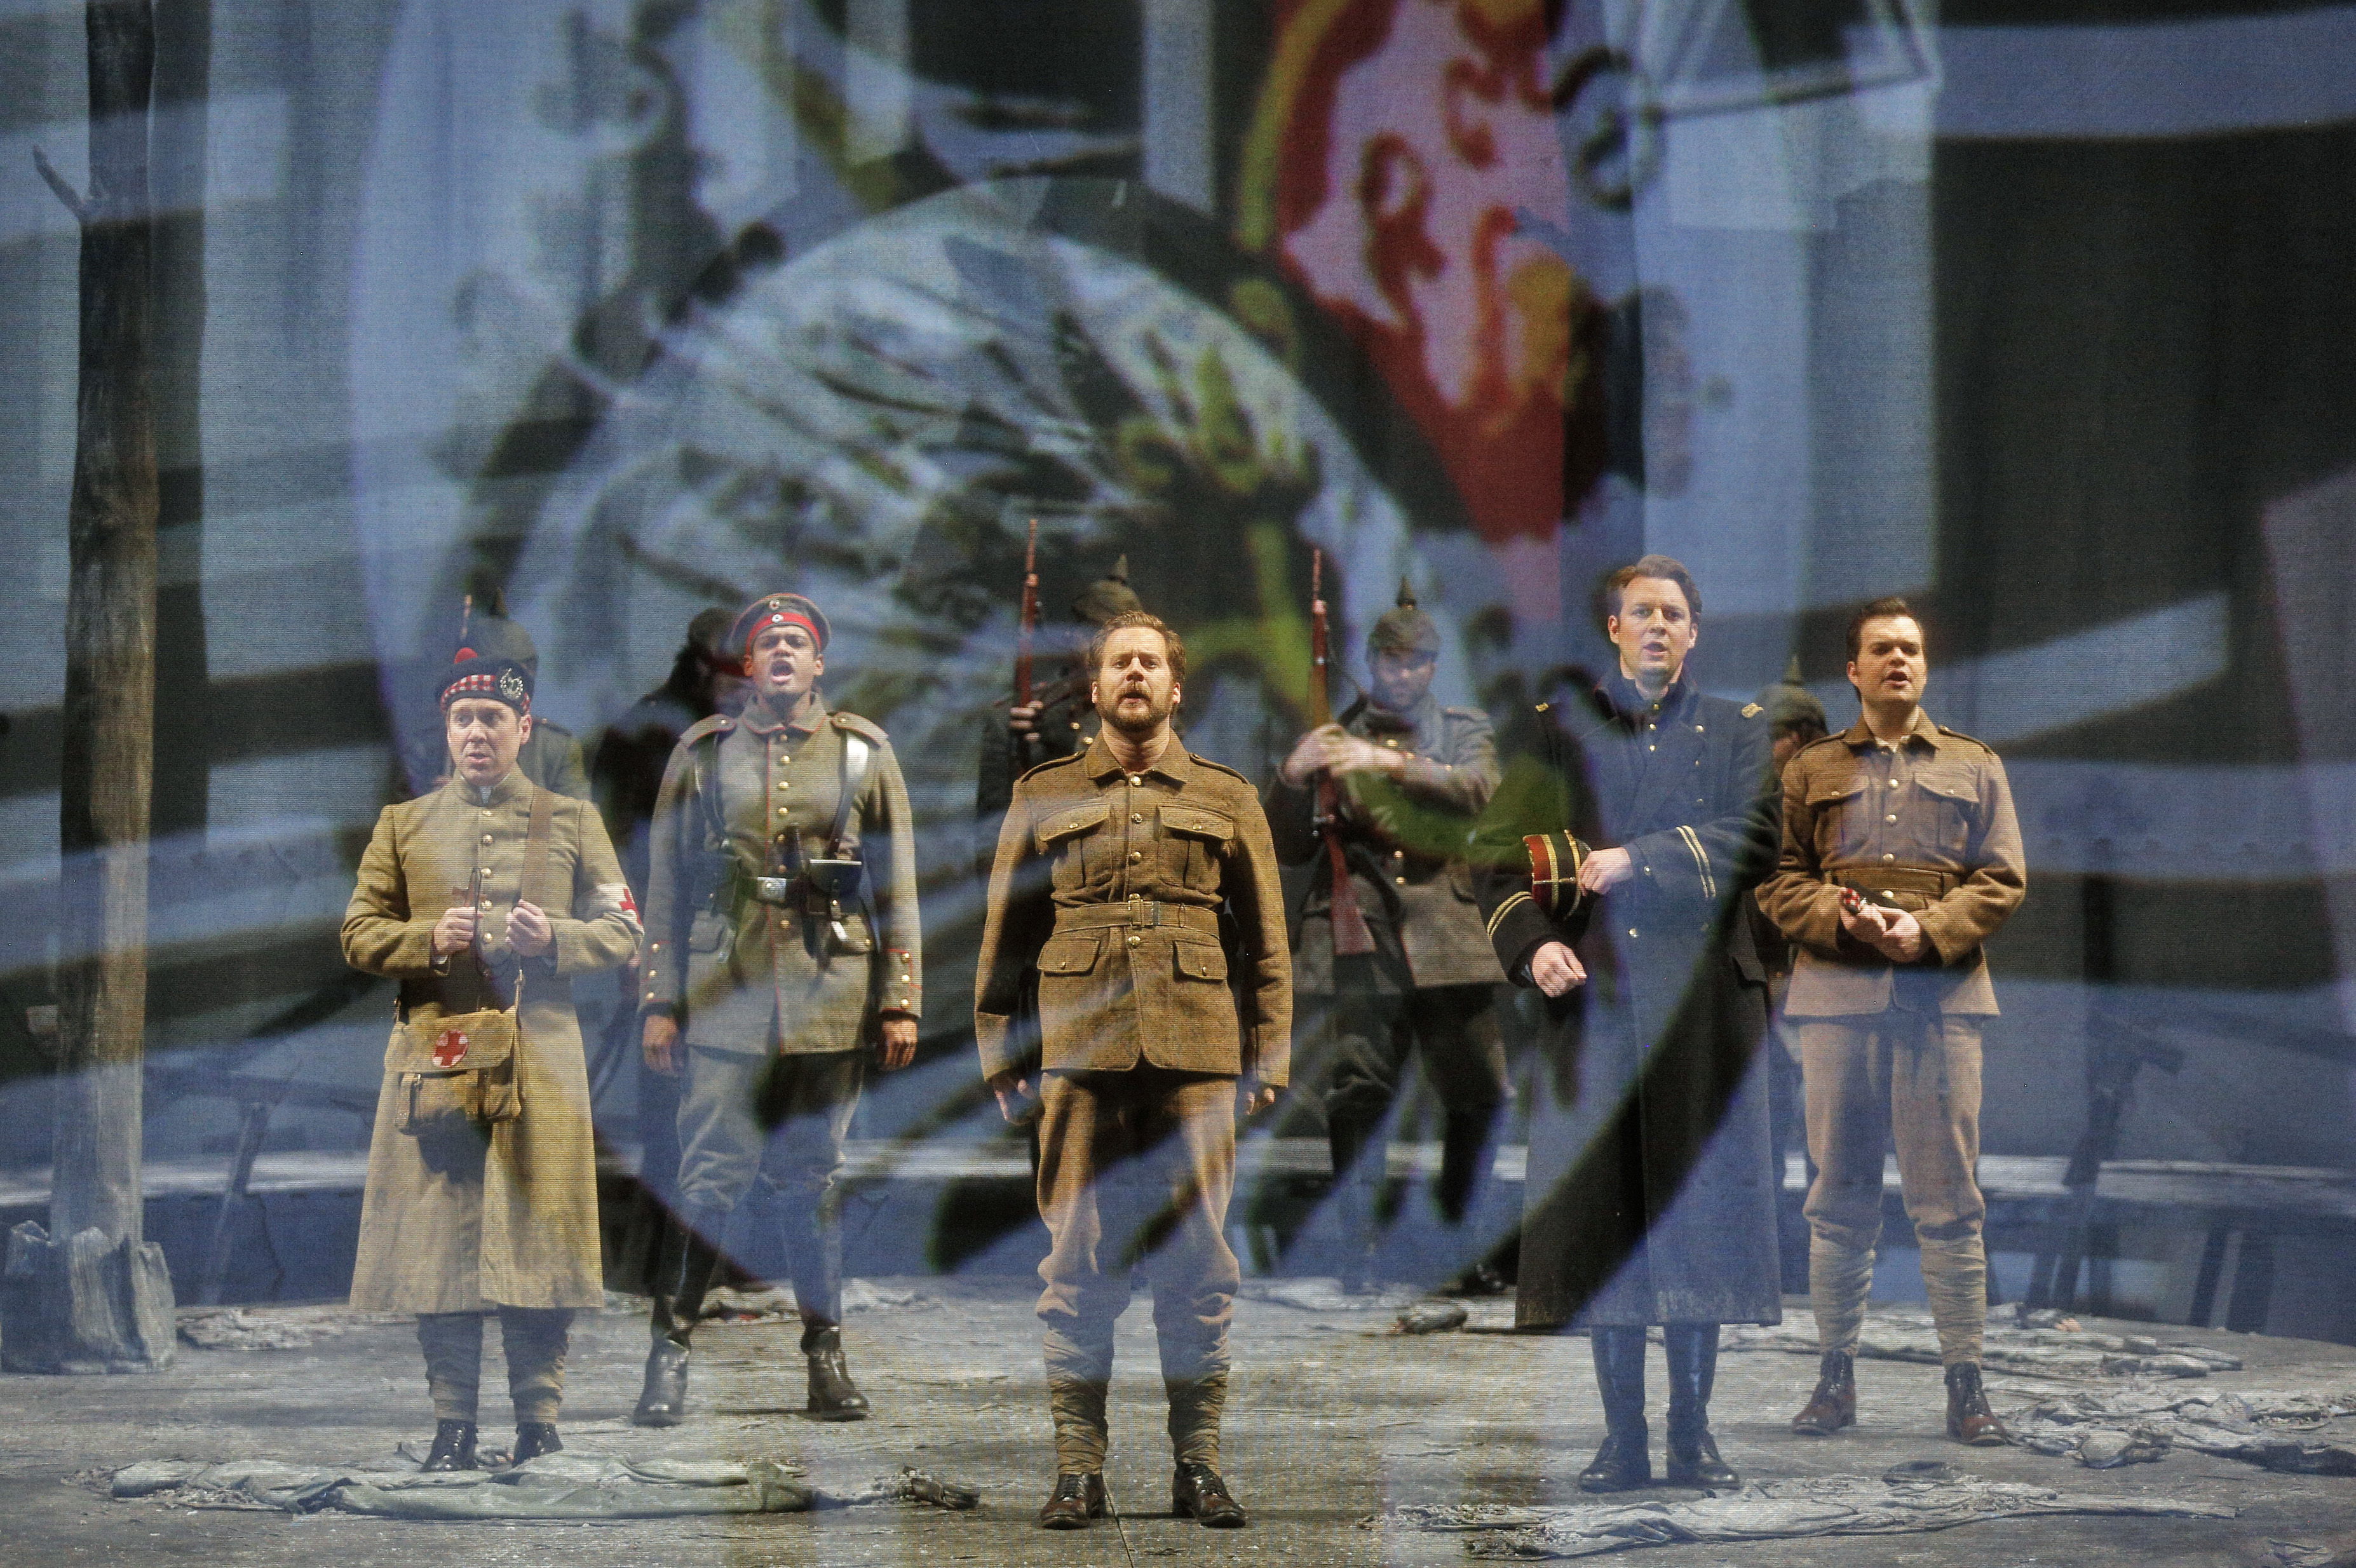 JOYOUS MOMENT: KC Lyric tackles bold new opera asking 'big questions' about war